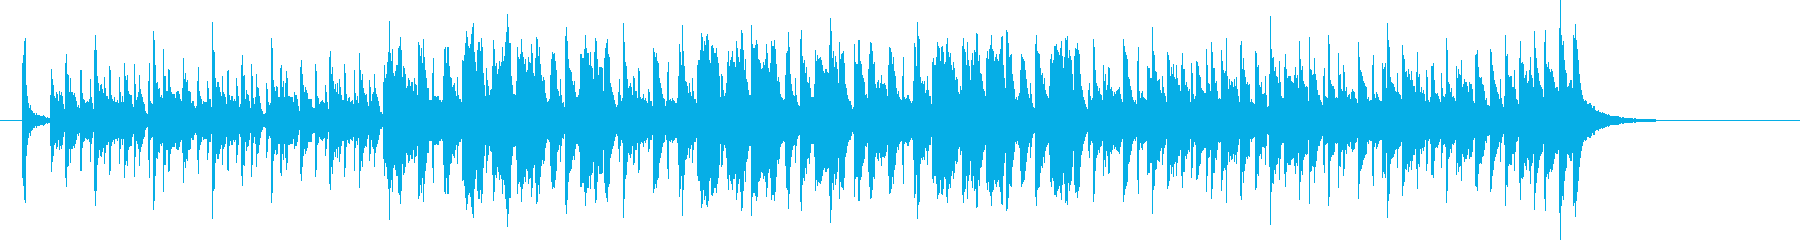 A light and pop band jingle's reproduced waveform